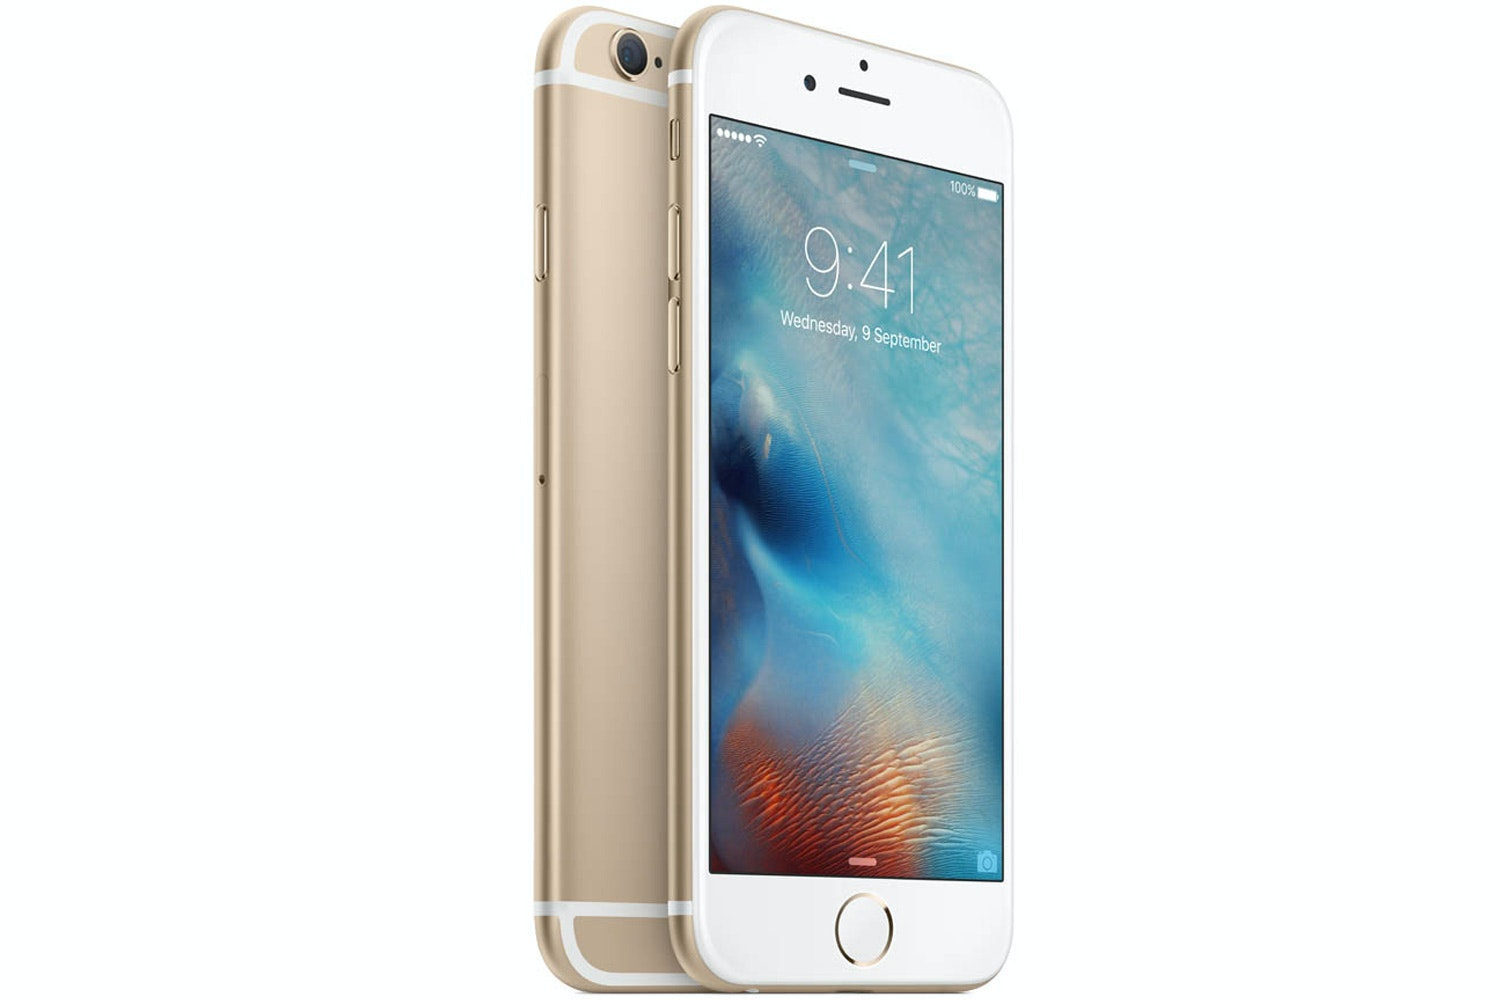 Mint+ Premium iPhone 6 | 16GB | Gold